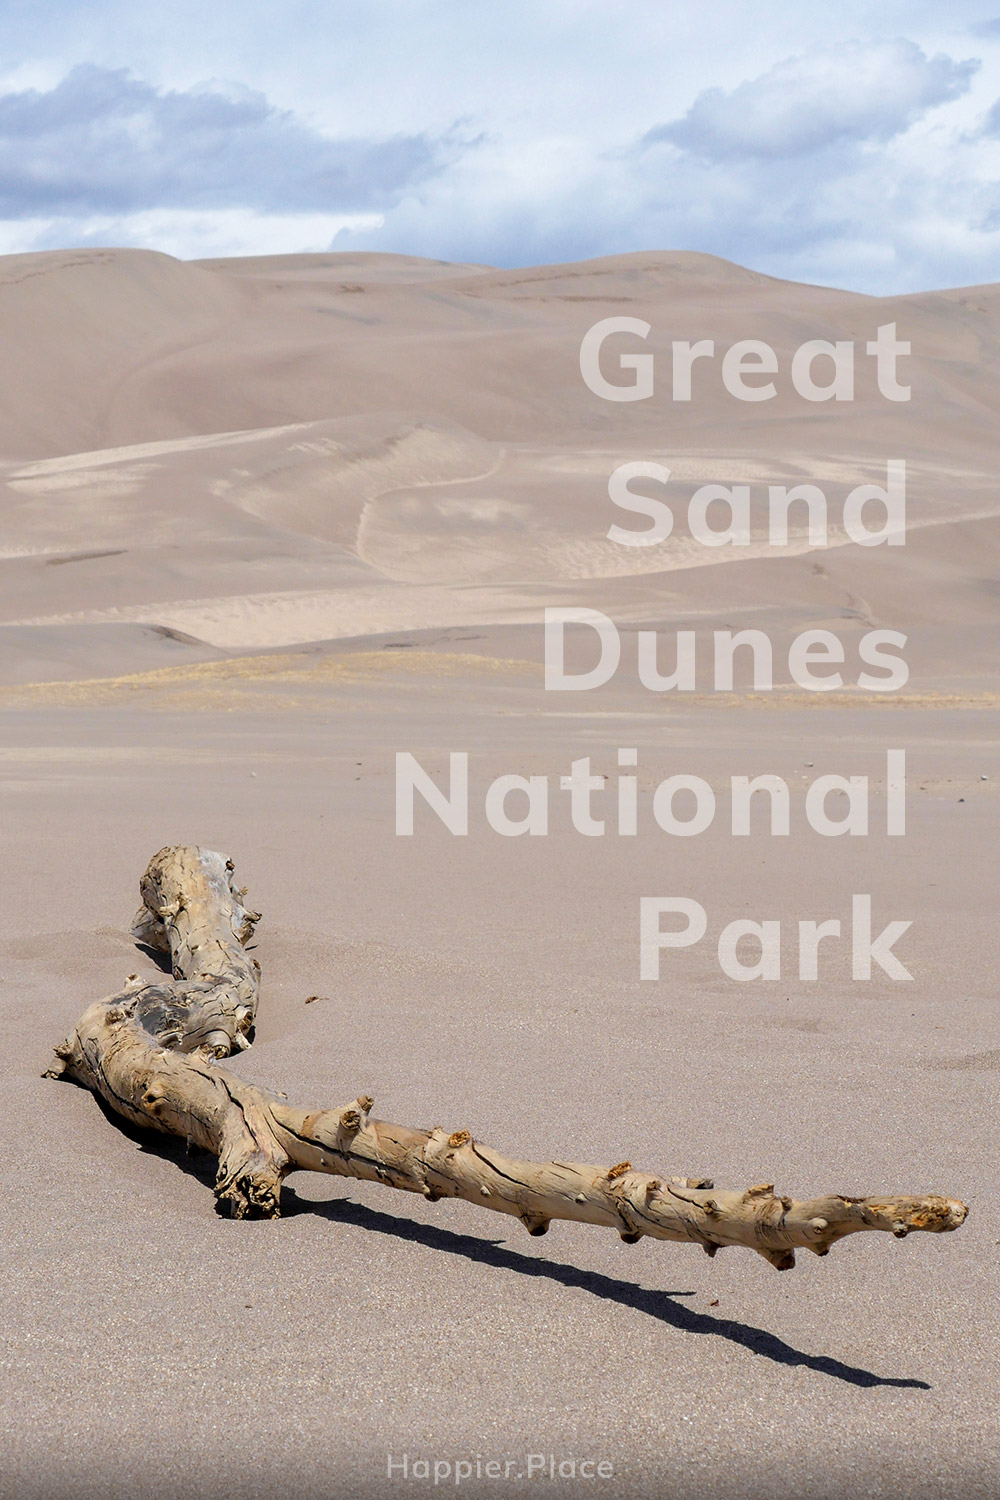 Great Sand Dunes National Park, dead tree in the desert, Colorado, HappierPlace